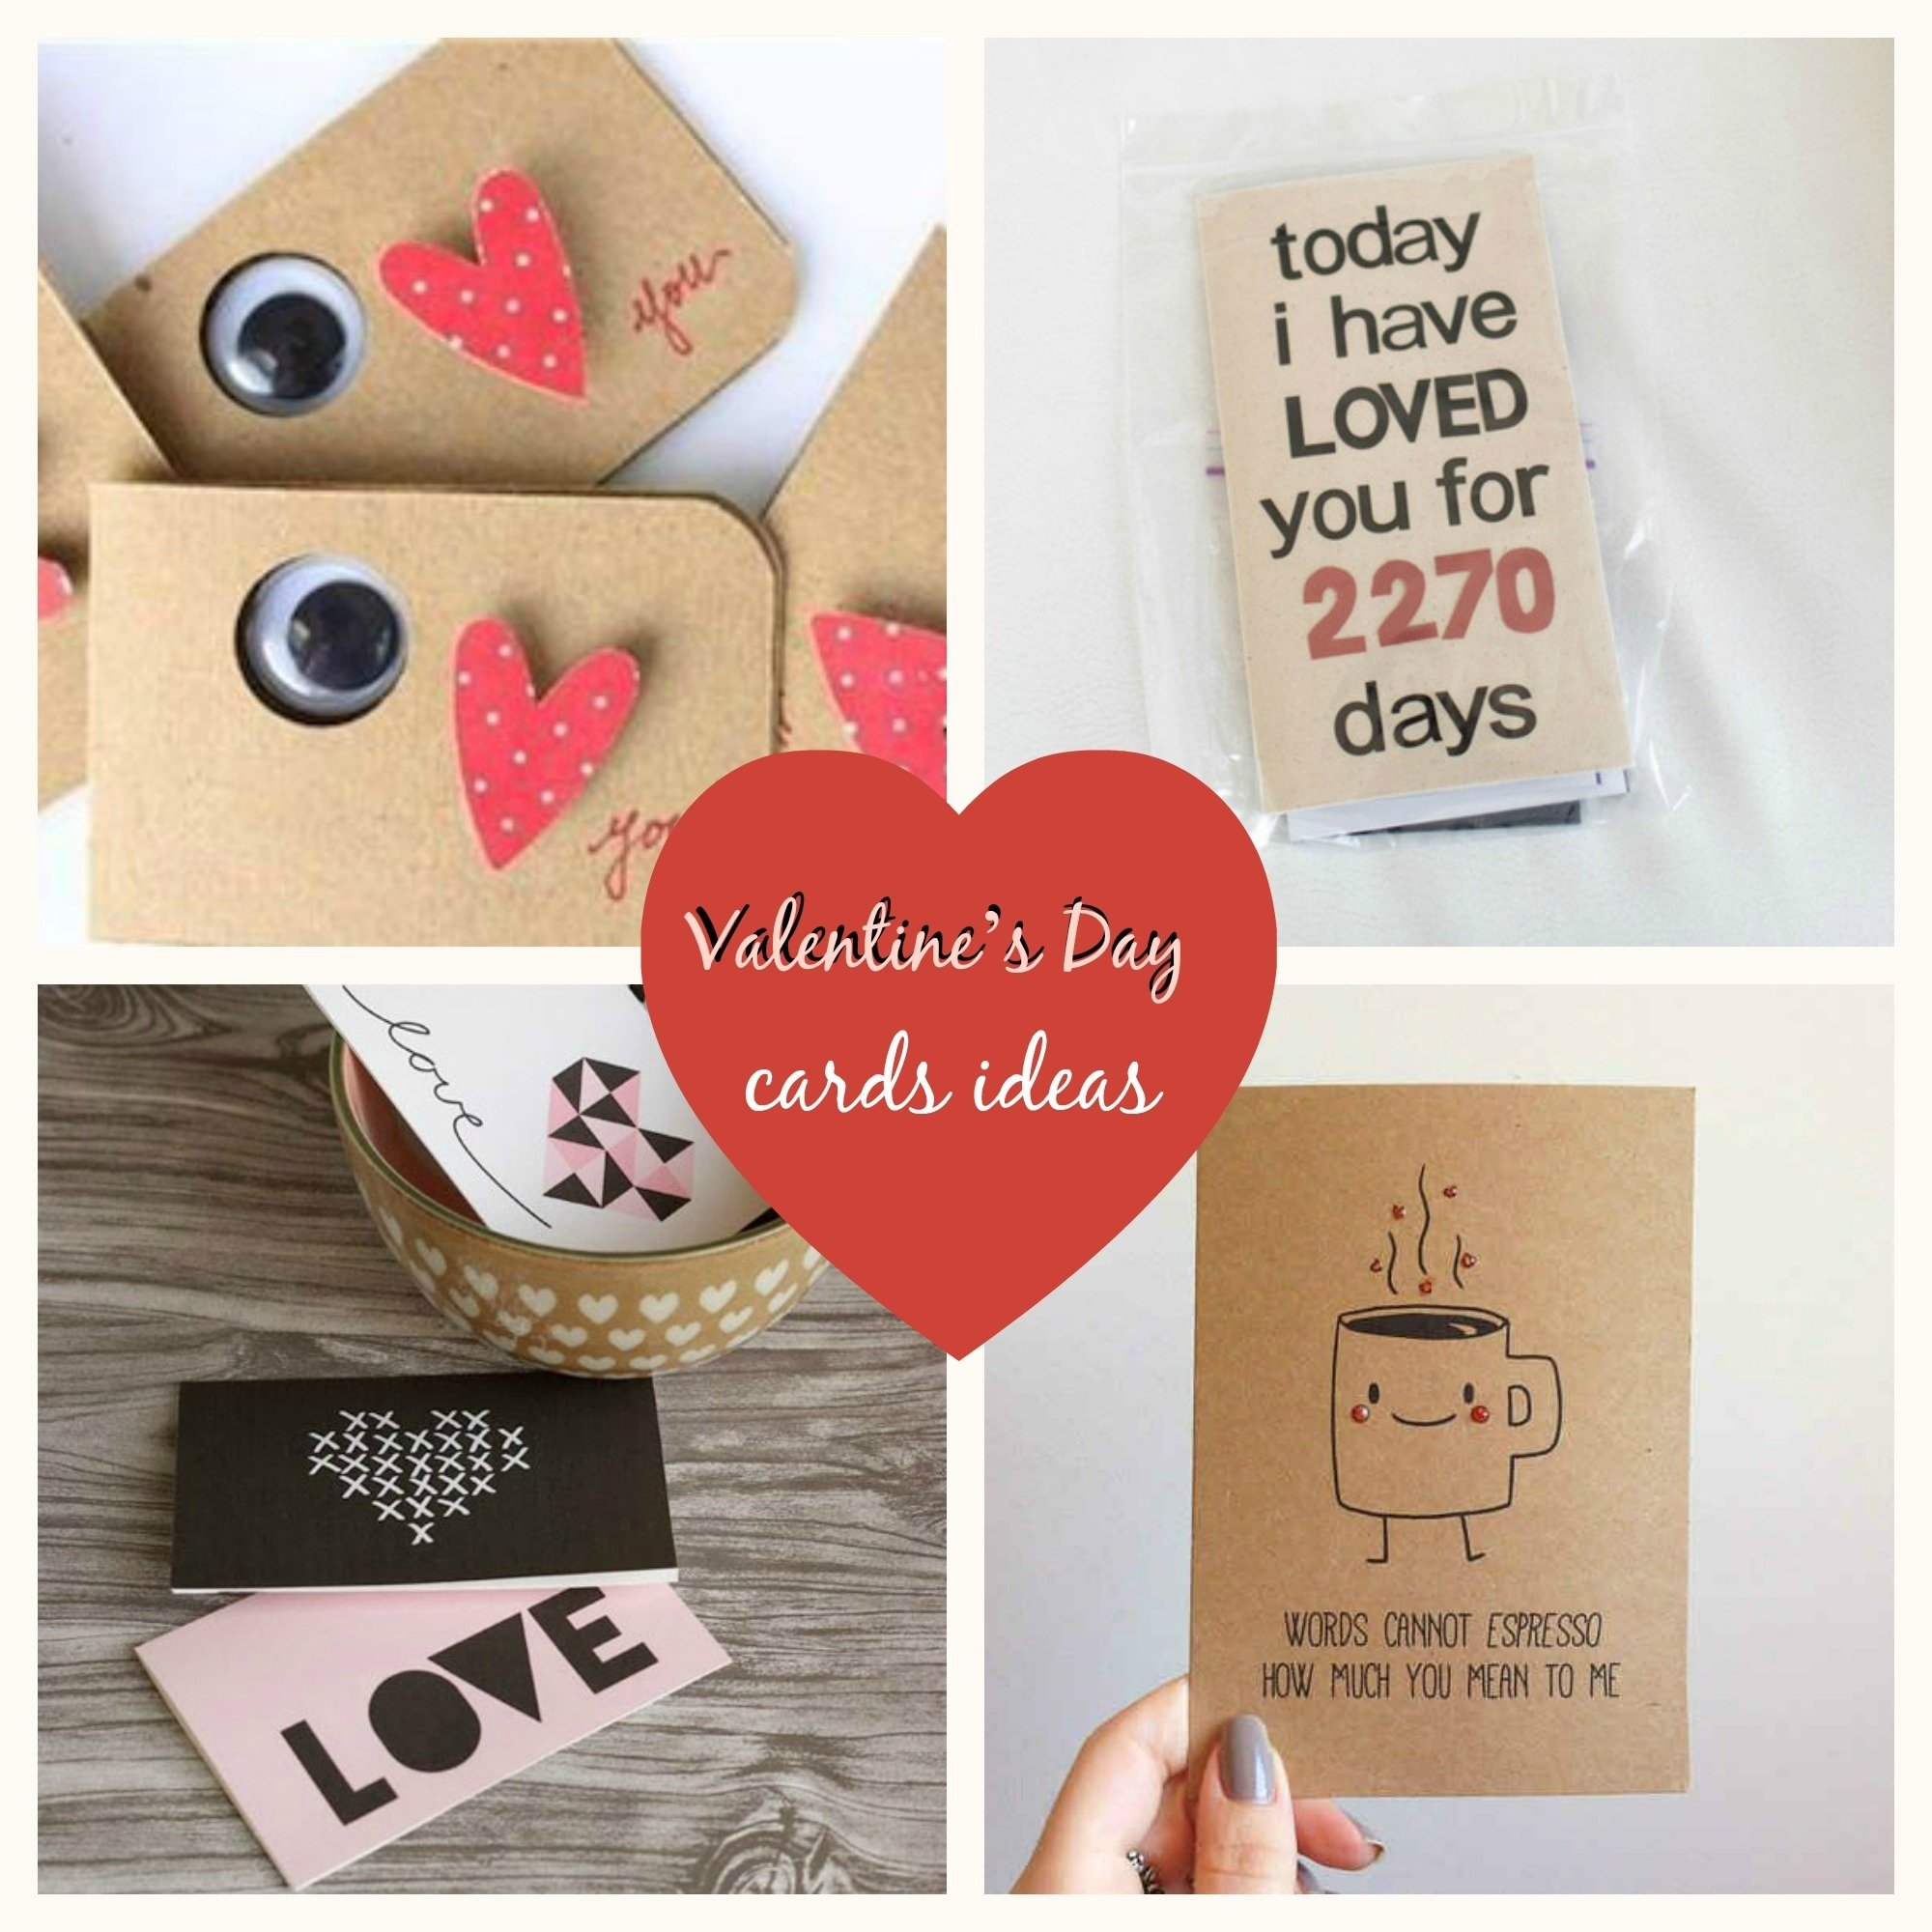 10 Fashionable Valentine Day Card Ideas Homemade chic diy inspiration valentines day cards ideas 2020